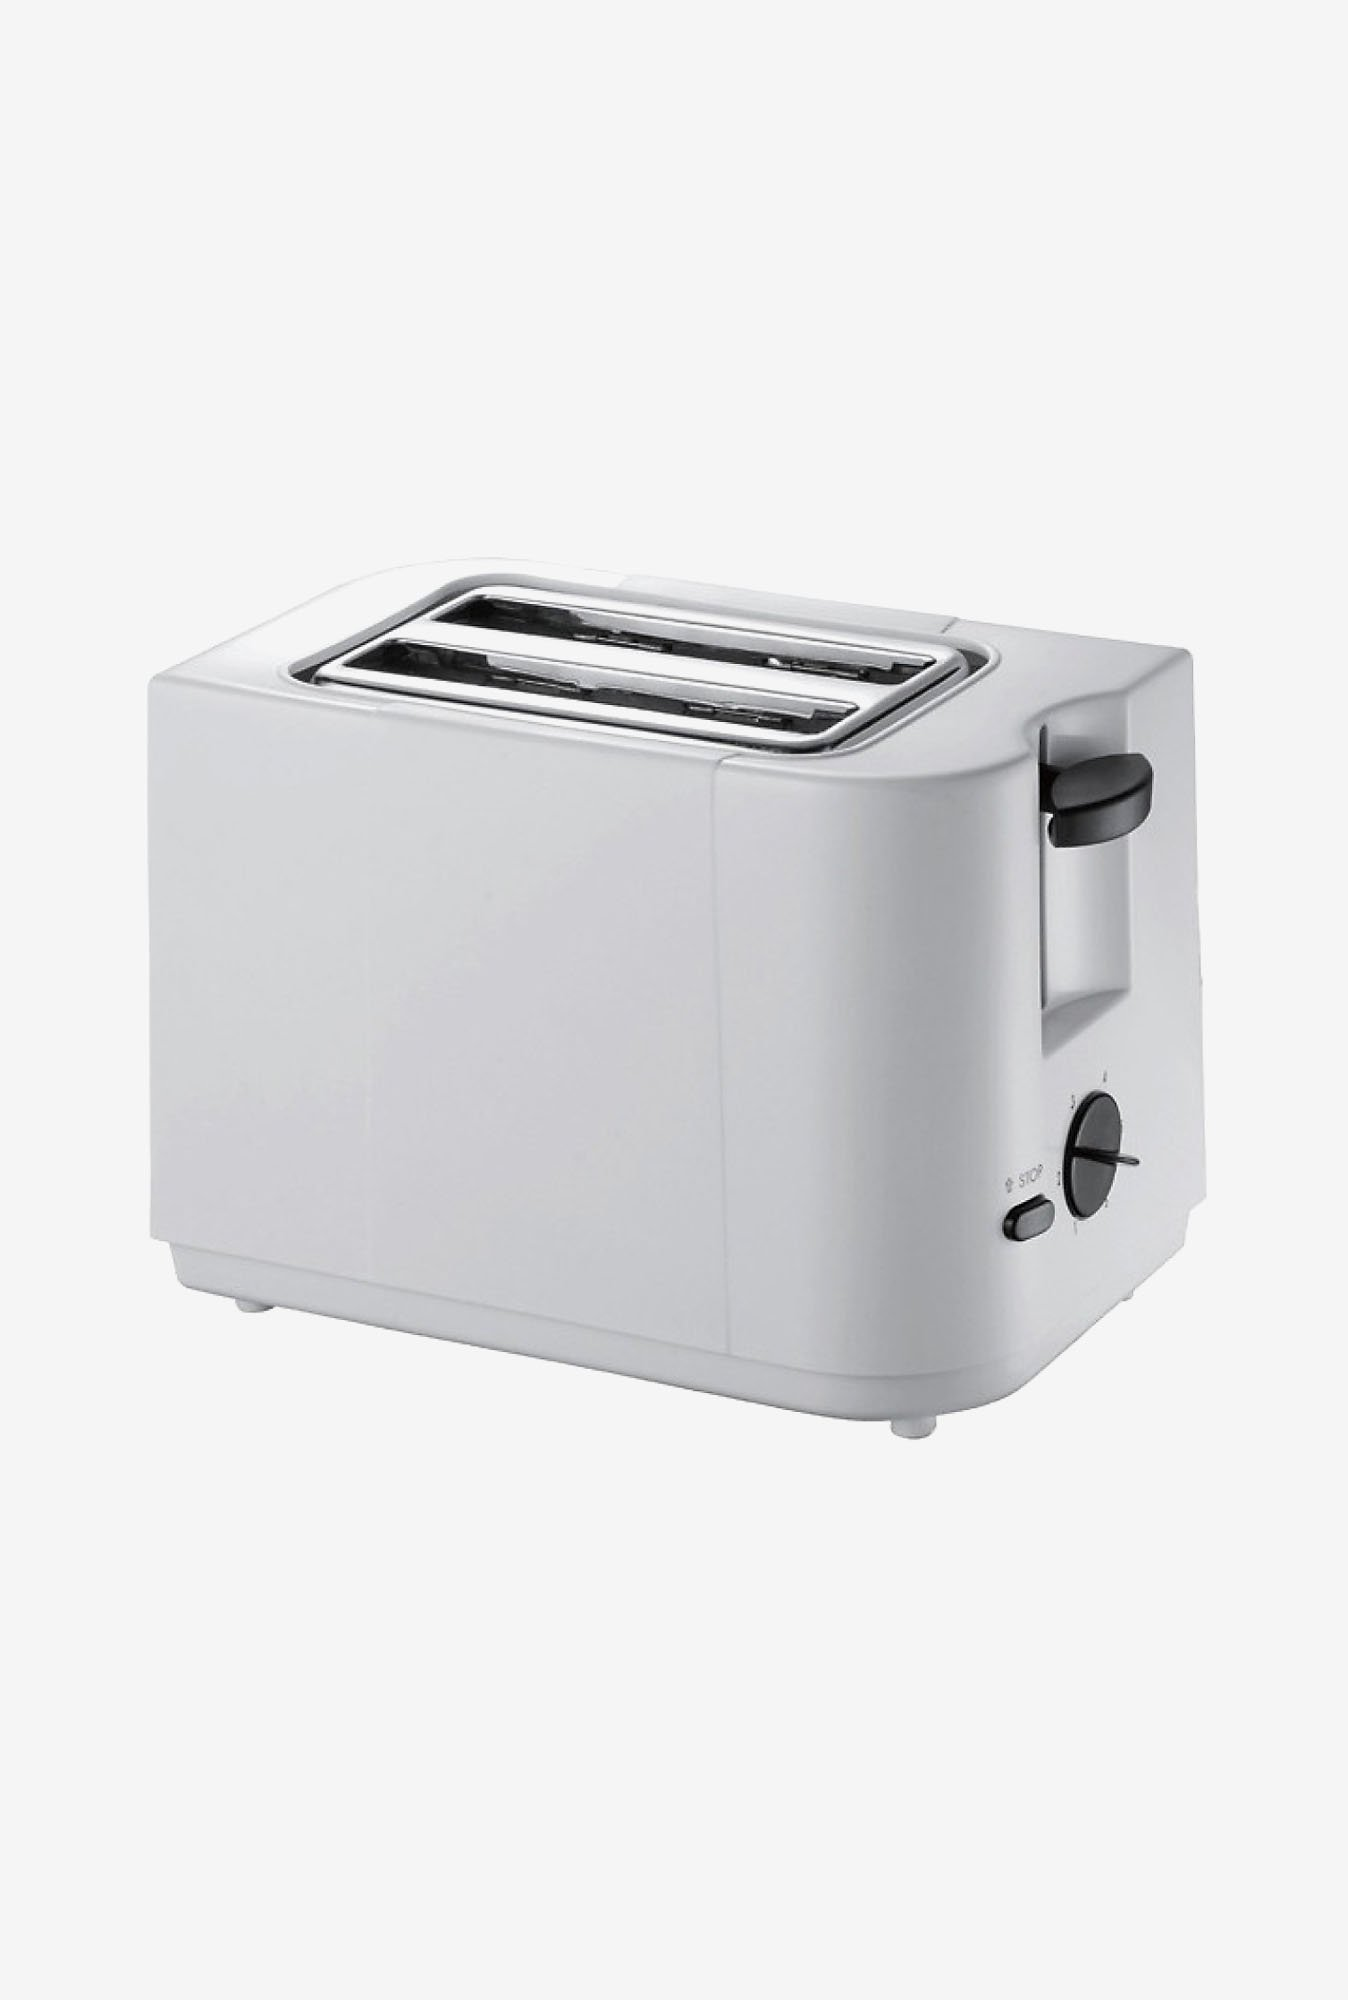 Russell Hobbs RPT702P 700 W 2 Slice Pop up Toaster (White)